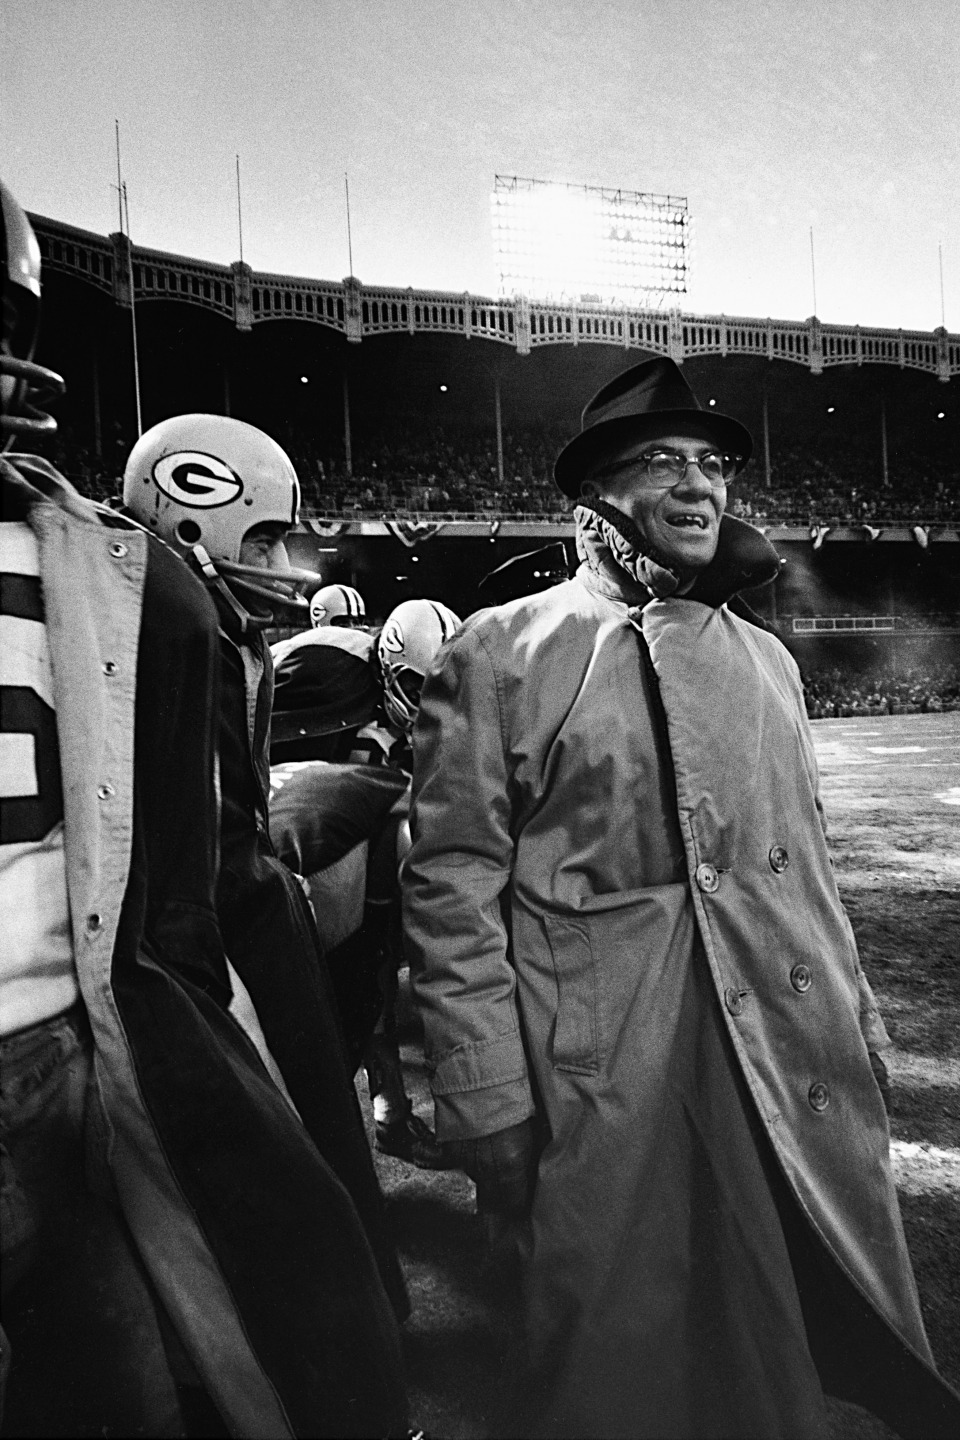 Vince Lombardi Standing on the Sideline